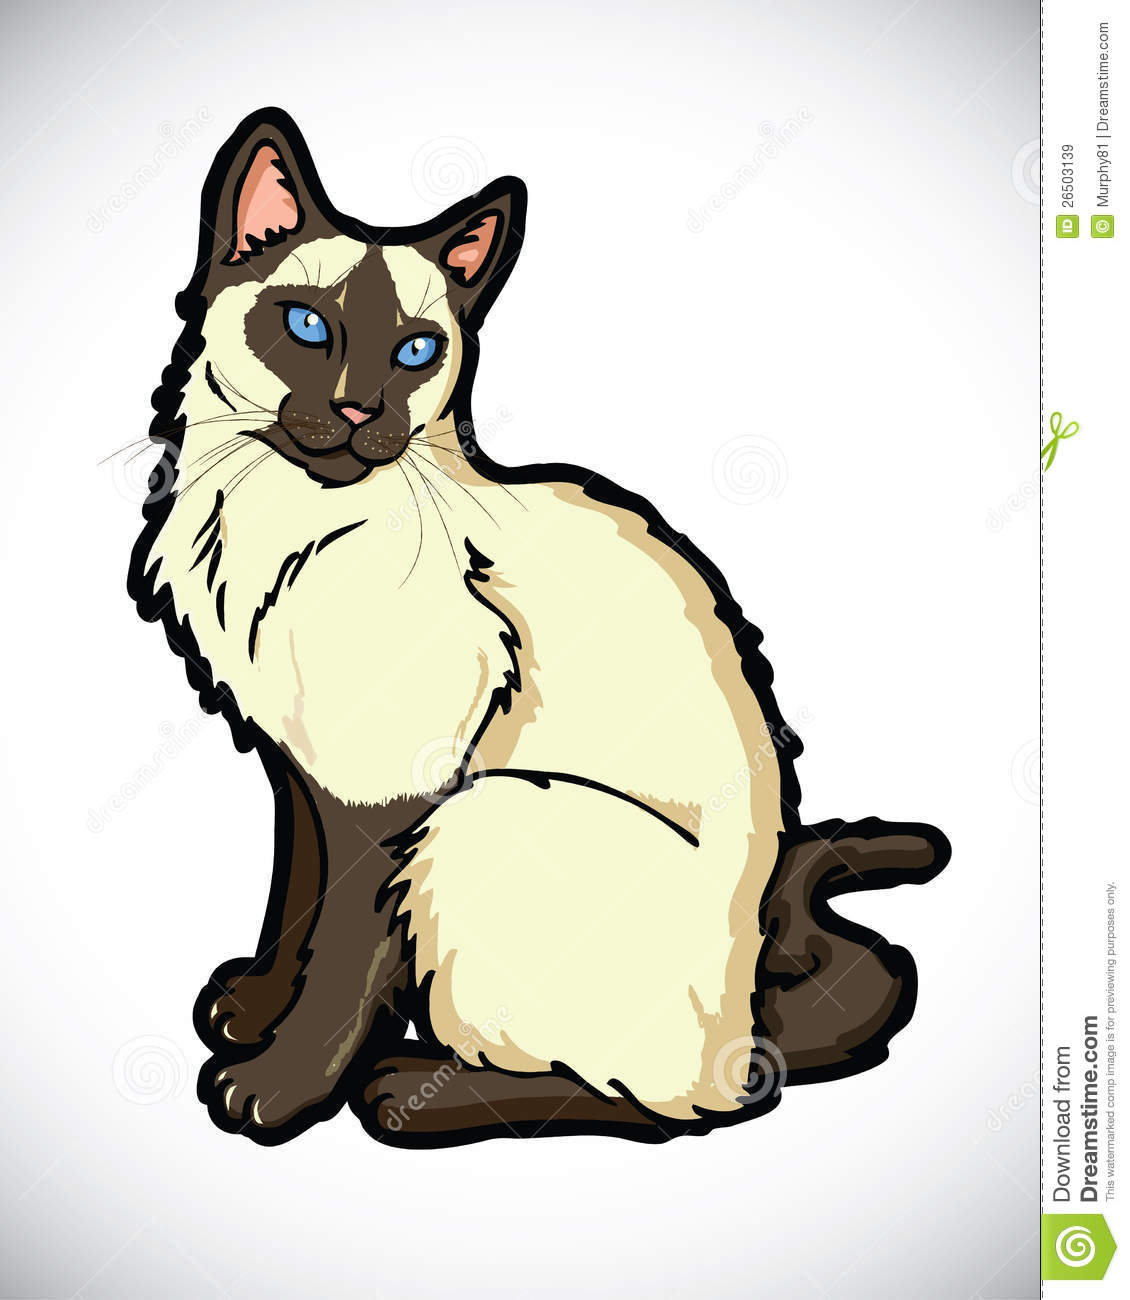 Himalayan Cat clipart #1, Download drawings